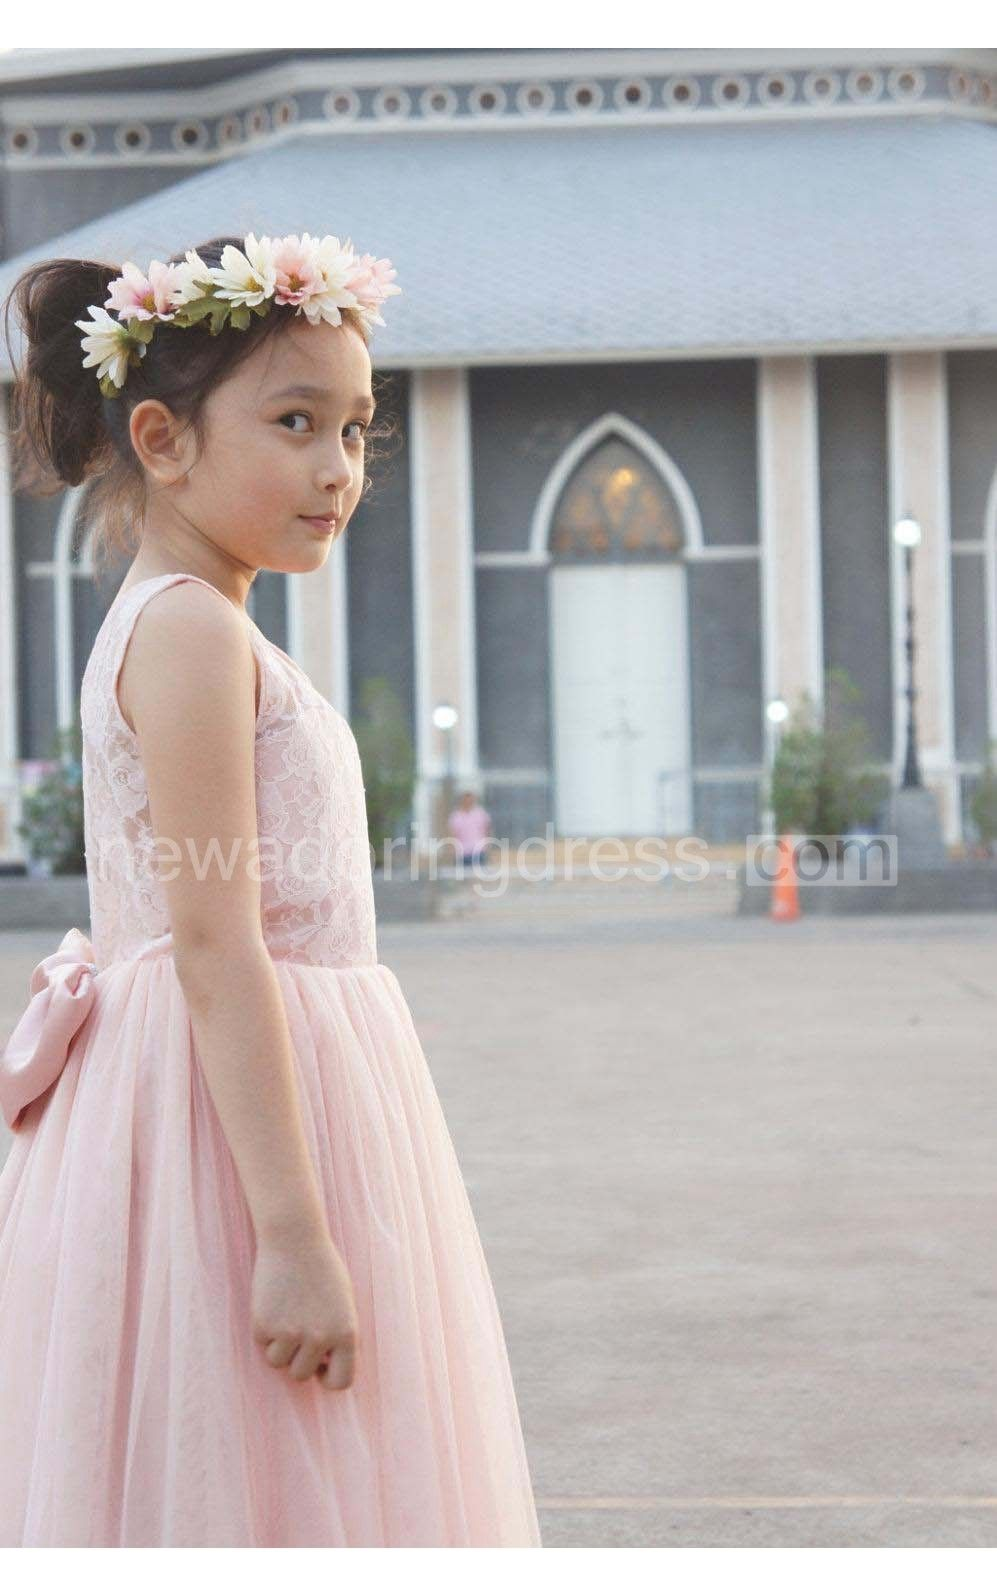 Blush flower lace bodice pleated aline tulle flower girl dress with